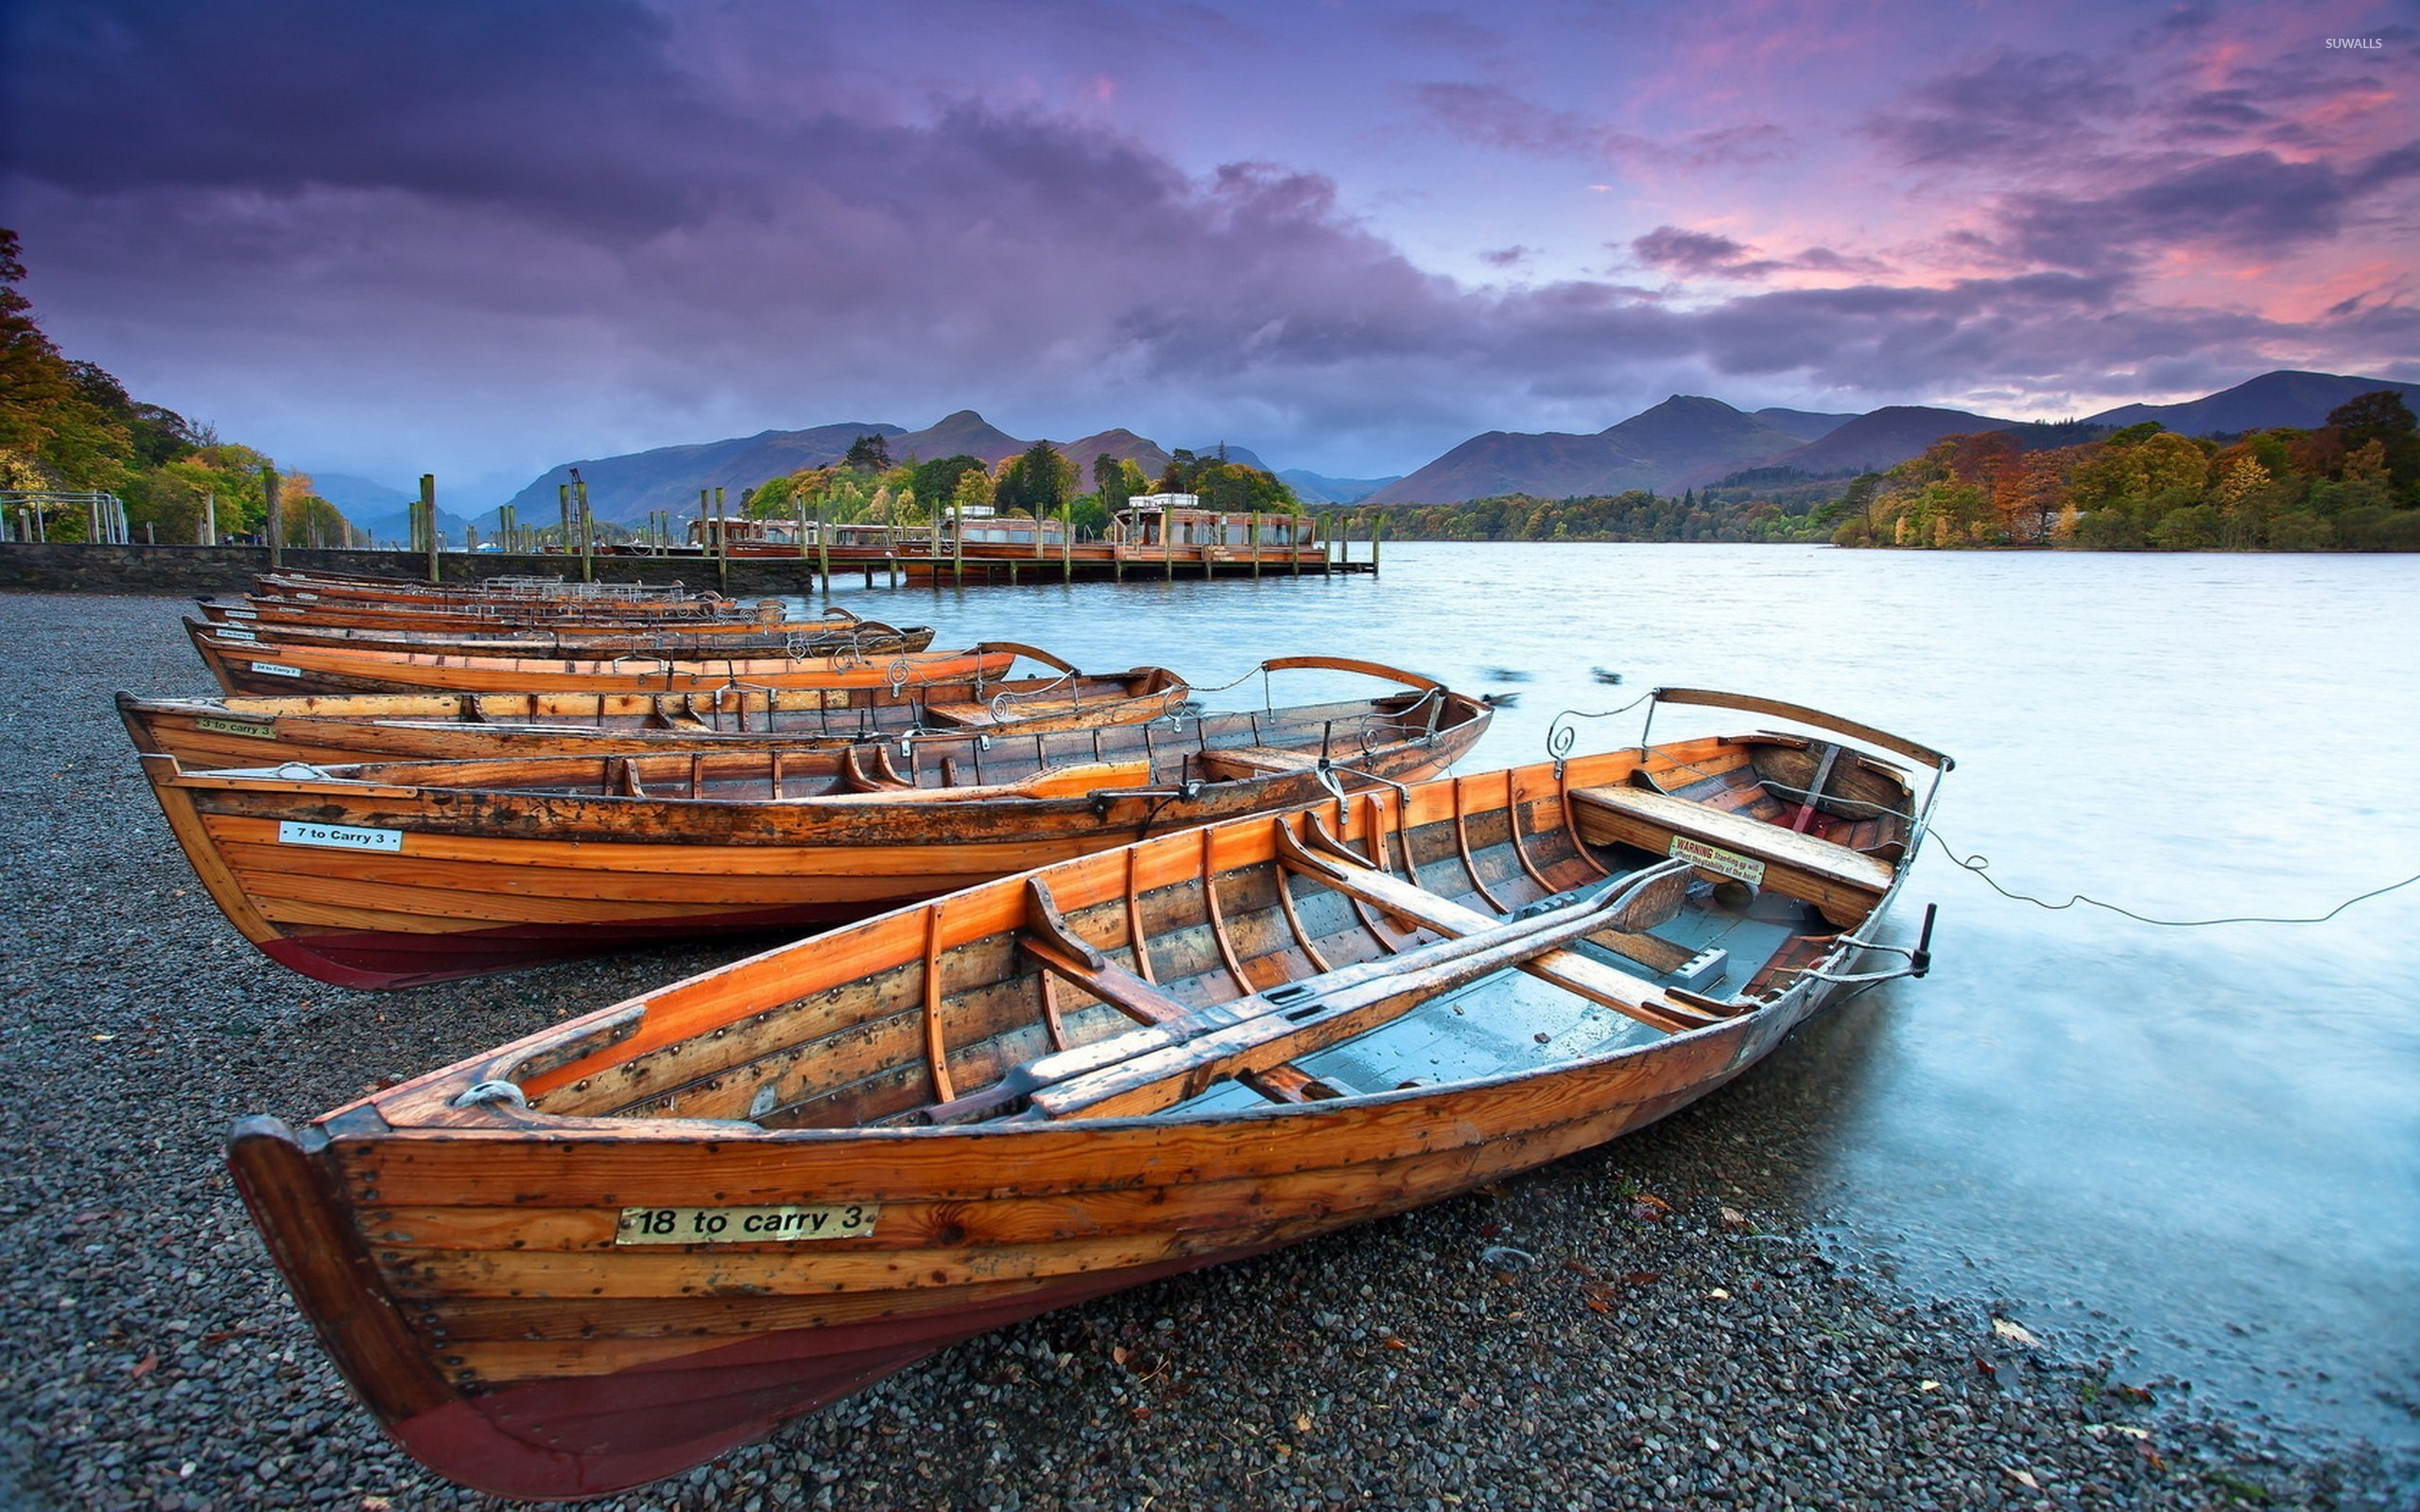 Wooden boats on the pebble beach of the river wallpaper ...